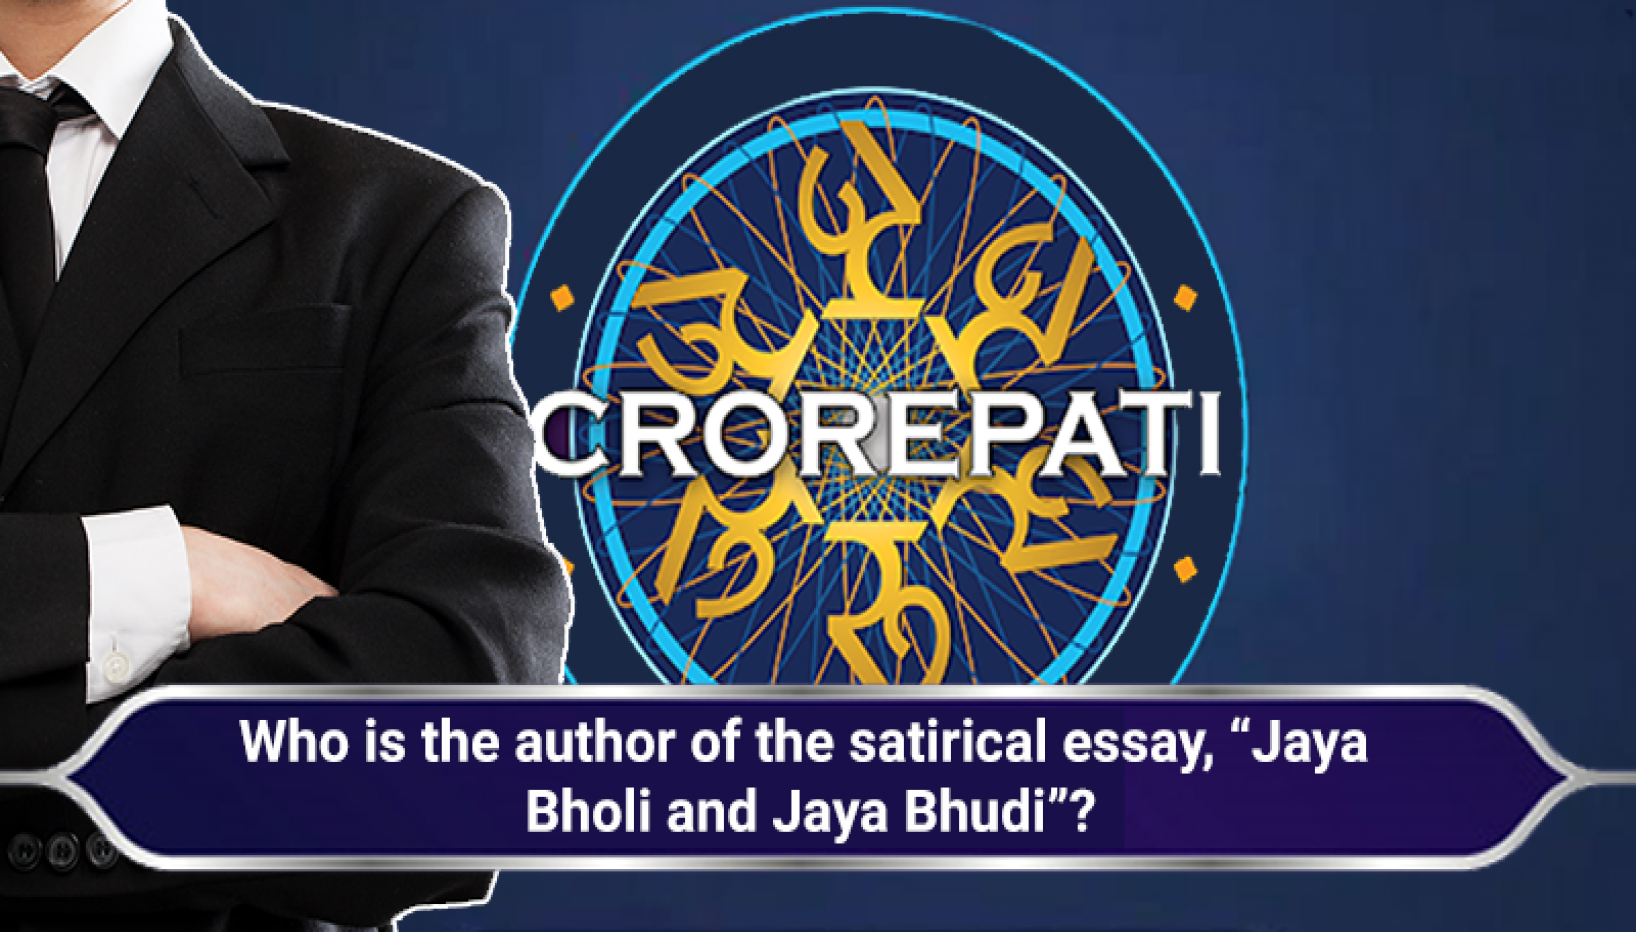 Take This Quiz And Find Out If You Have What It Takes To Become A Crorepati